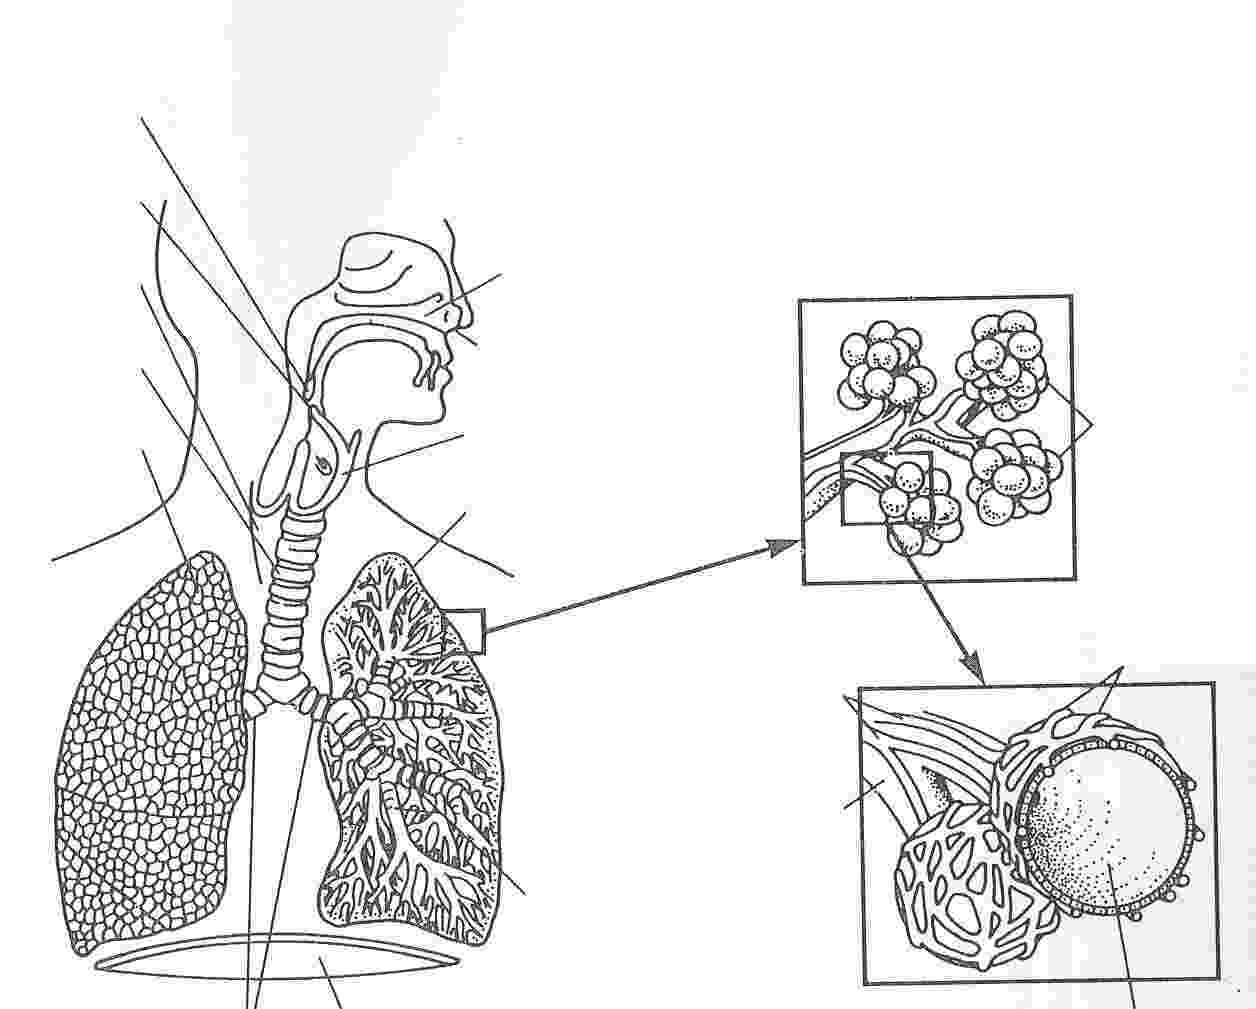 respiratory system coloring sheet respiratory system coloring page coloring home respiratory sheet coloring system